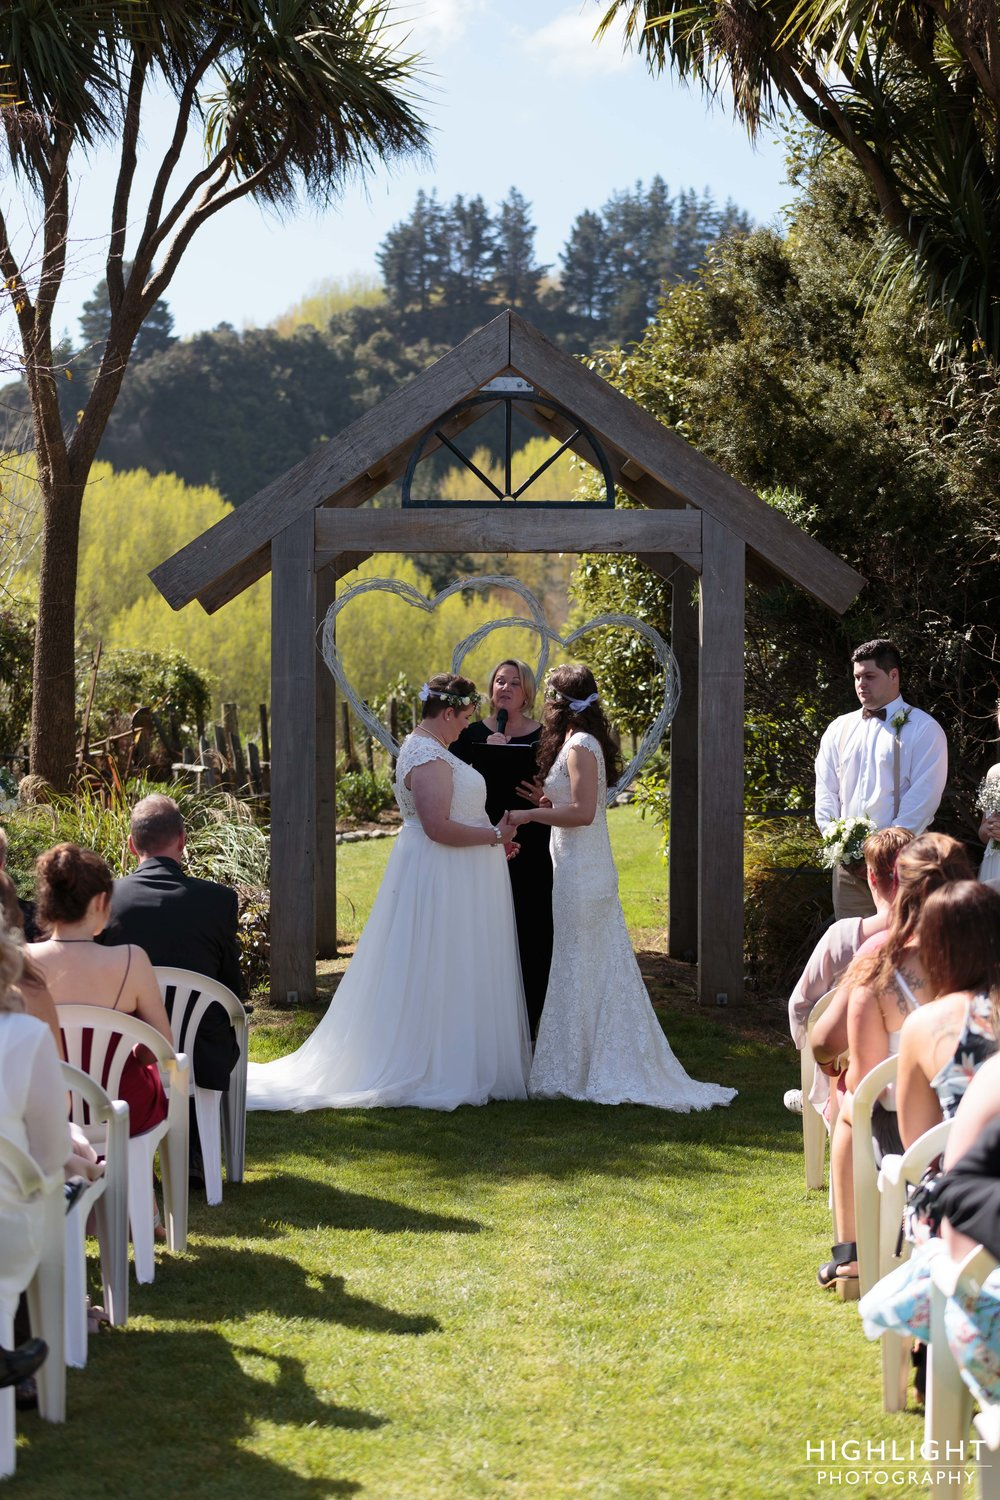 highlight_wedding_photography_makoura_lodge_manawatu_new_zealand-69.jpg